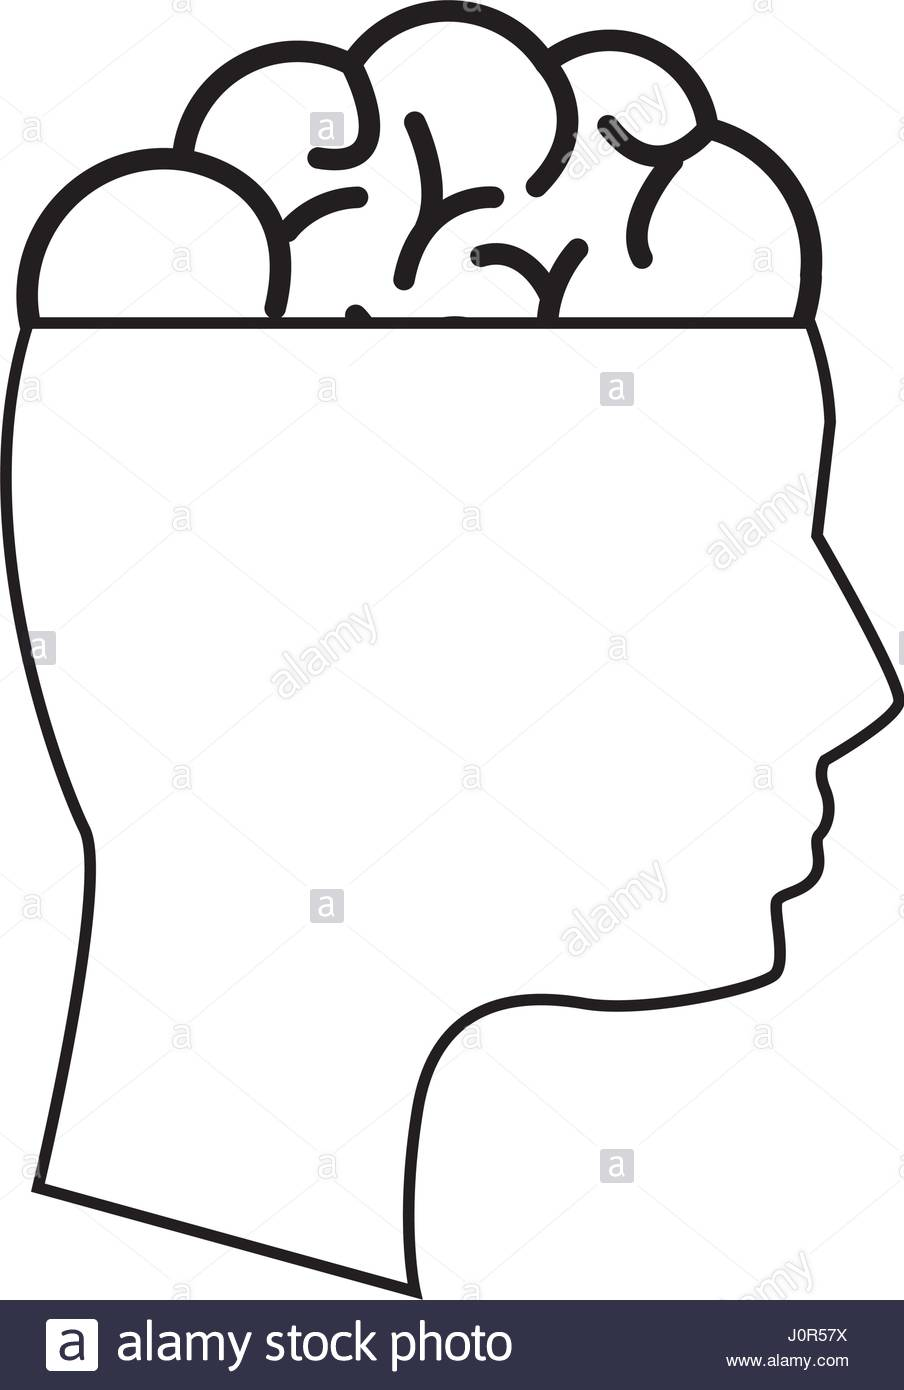 904x1390 Mental Health Silhouette Person With Brain Stock Vector Art